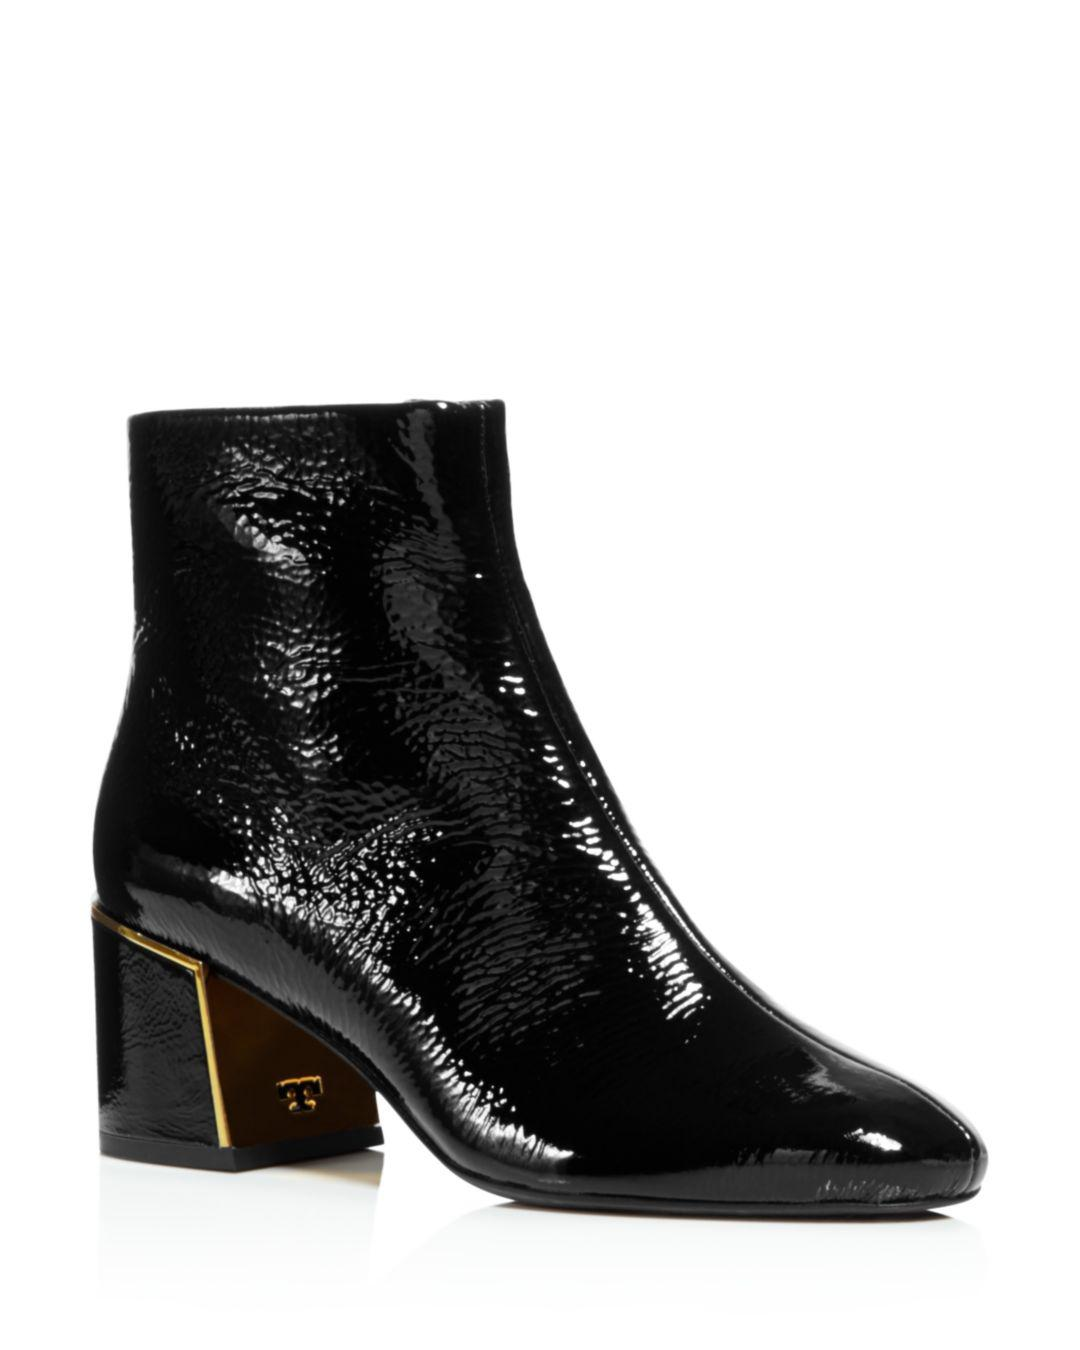 815df4e0fc11b7 Lyst - Tory Burch Women s Juliana Tumbled Patent Leather Booties in ...